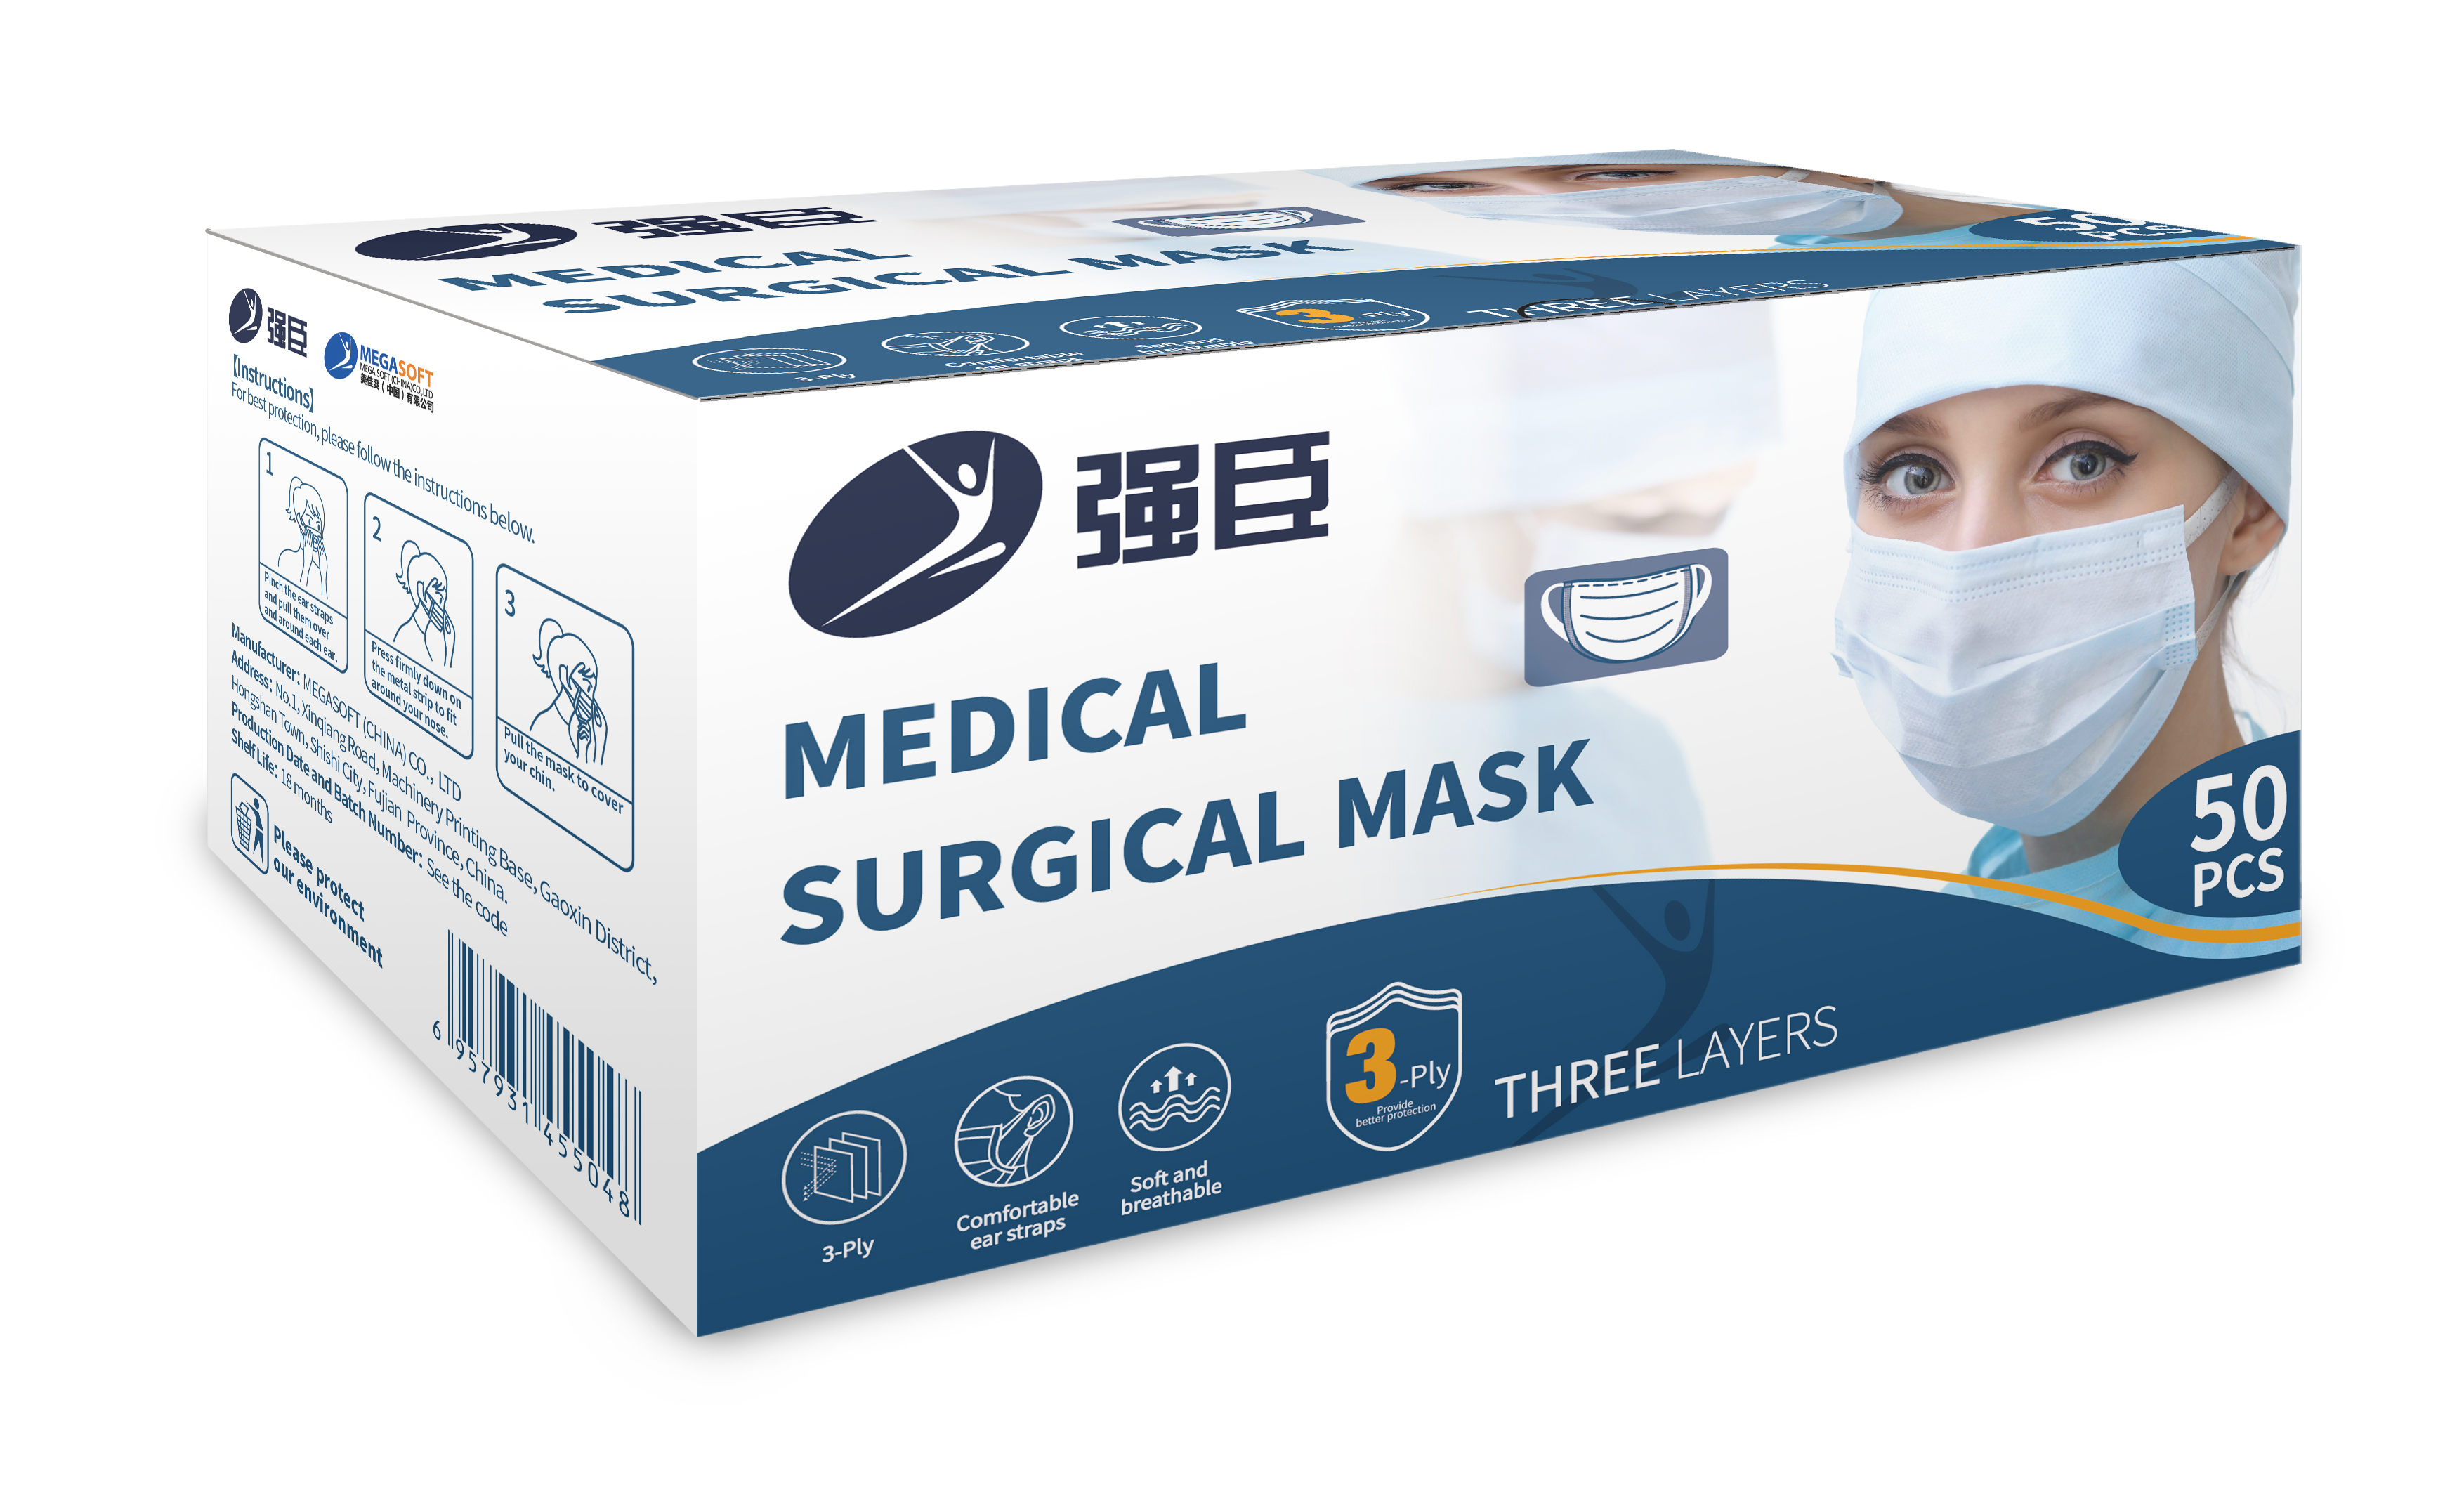 强臣 Medical Surgical Mask (50pcs)